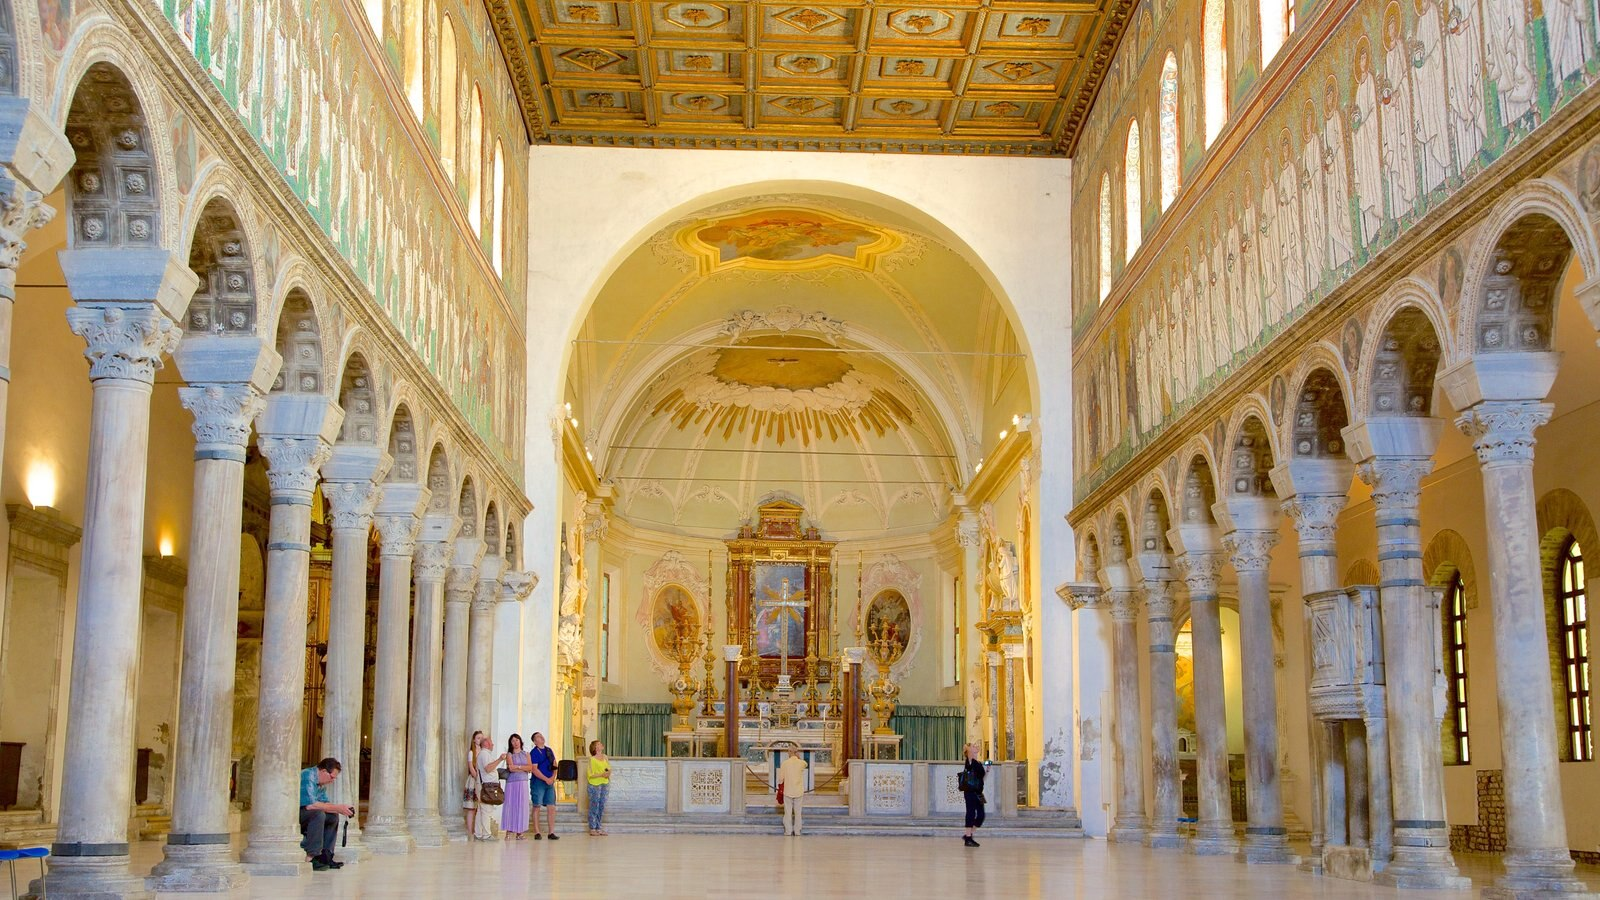 Basilica of Sant\' Apollinare Nuovo showing interior views, a church or cathedral and religious elements